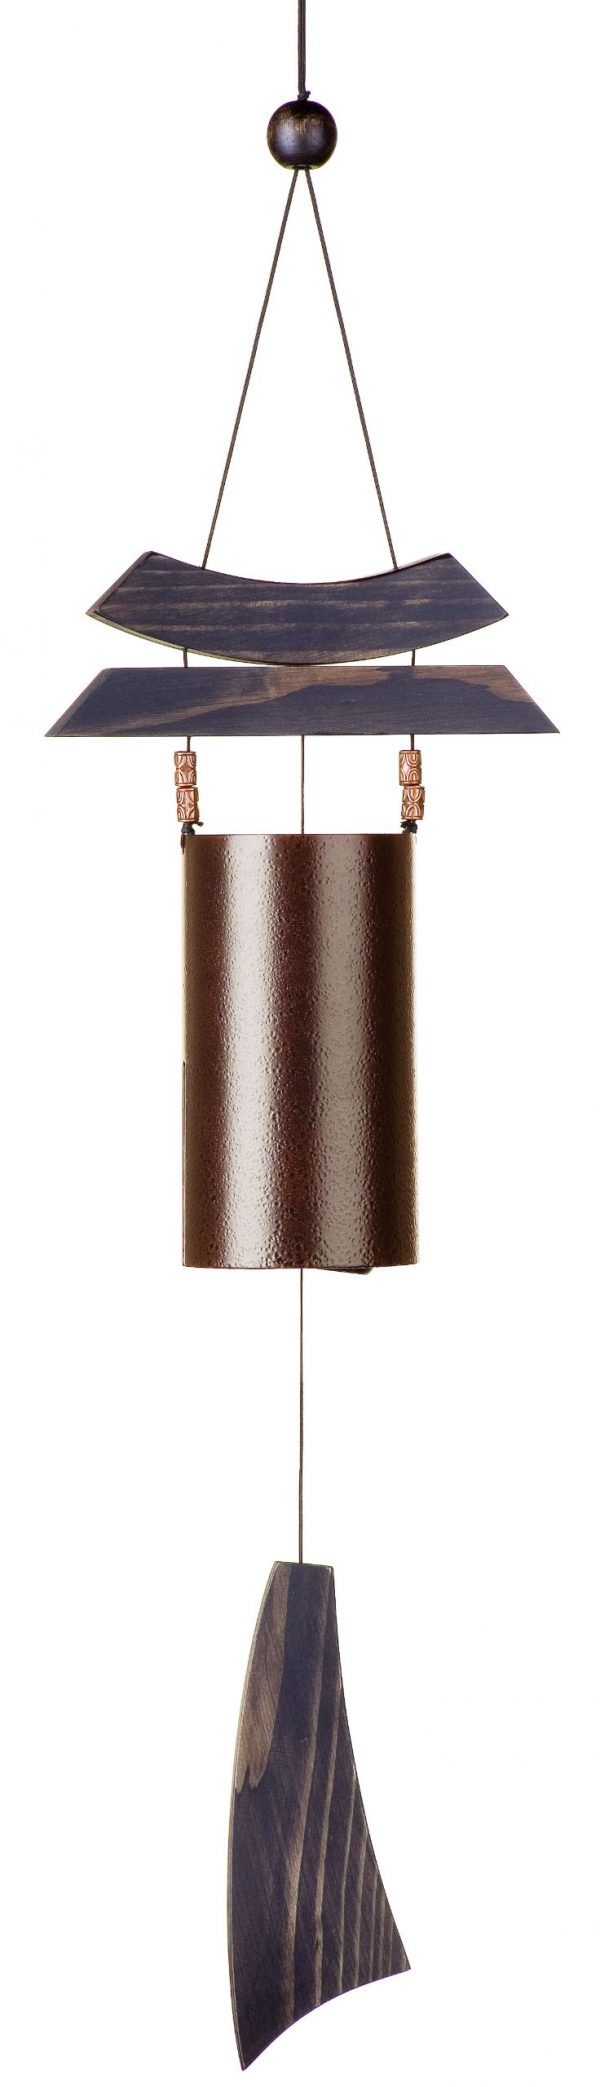 Woodstock Chimes DB Dharma Cowbell, Antique Copper